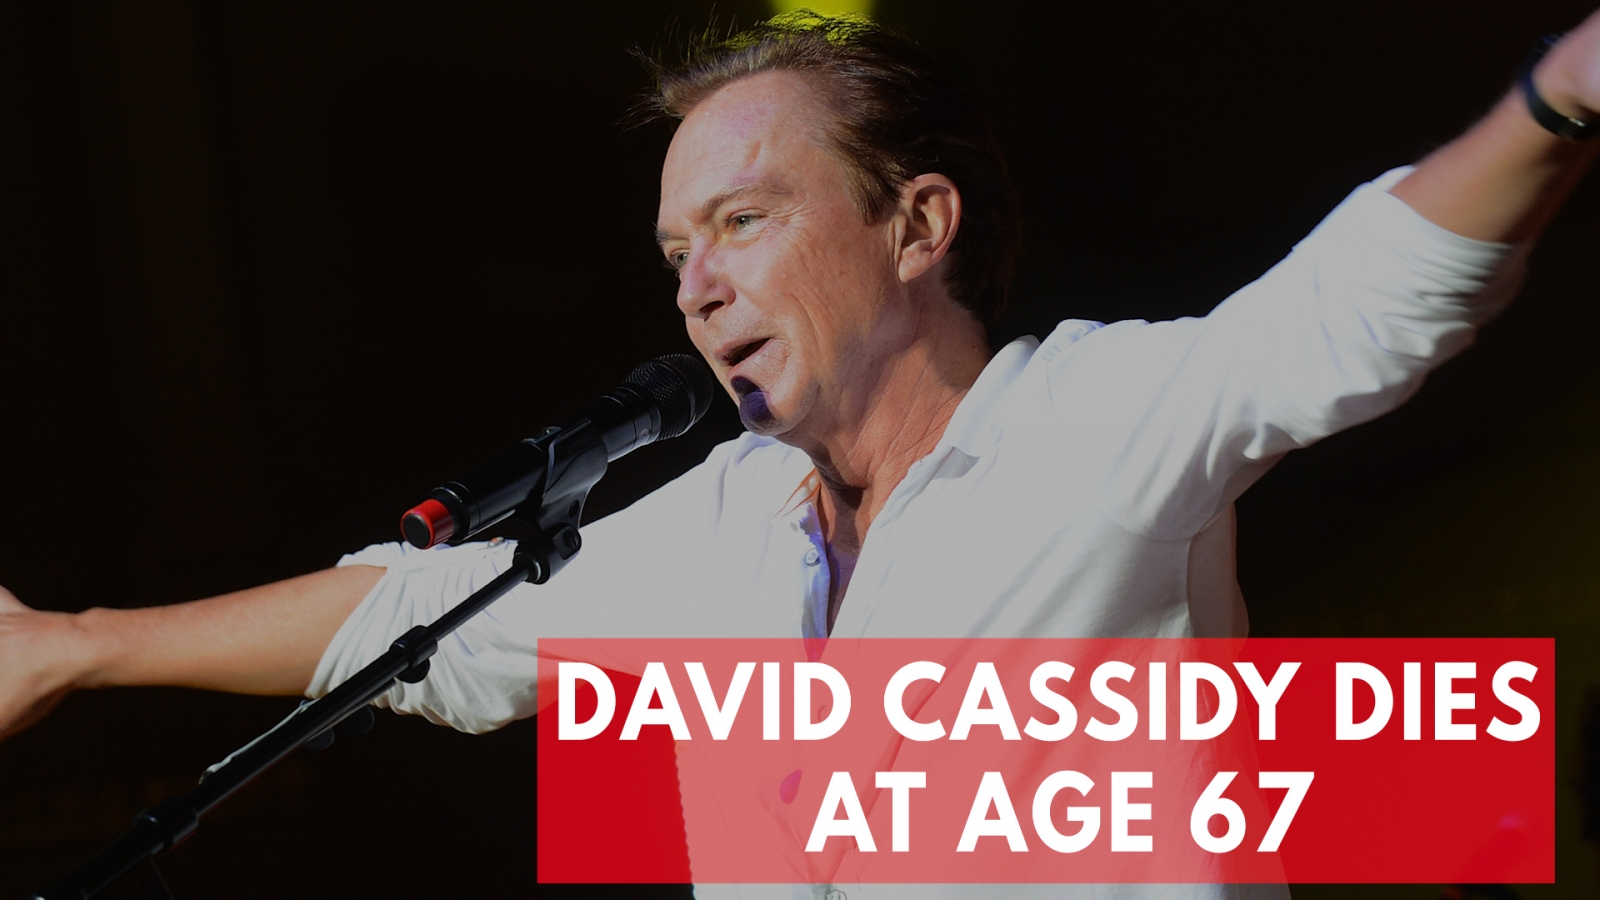 david-cassidy-1970s-teen-heartthrob-dies-at-age-67